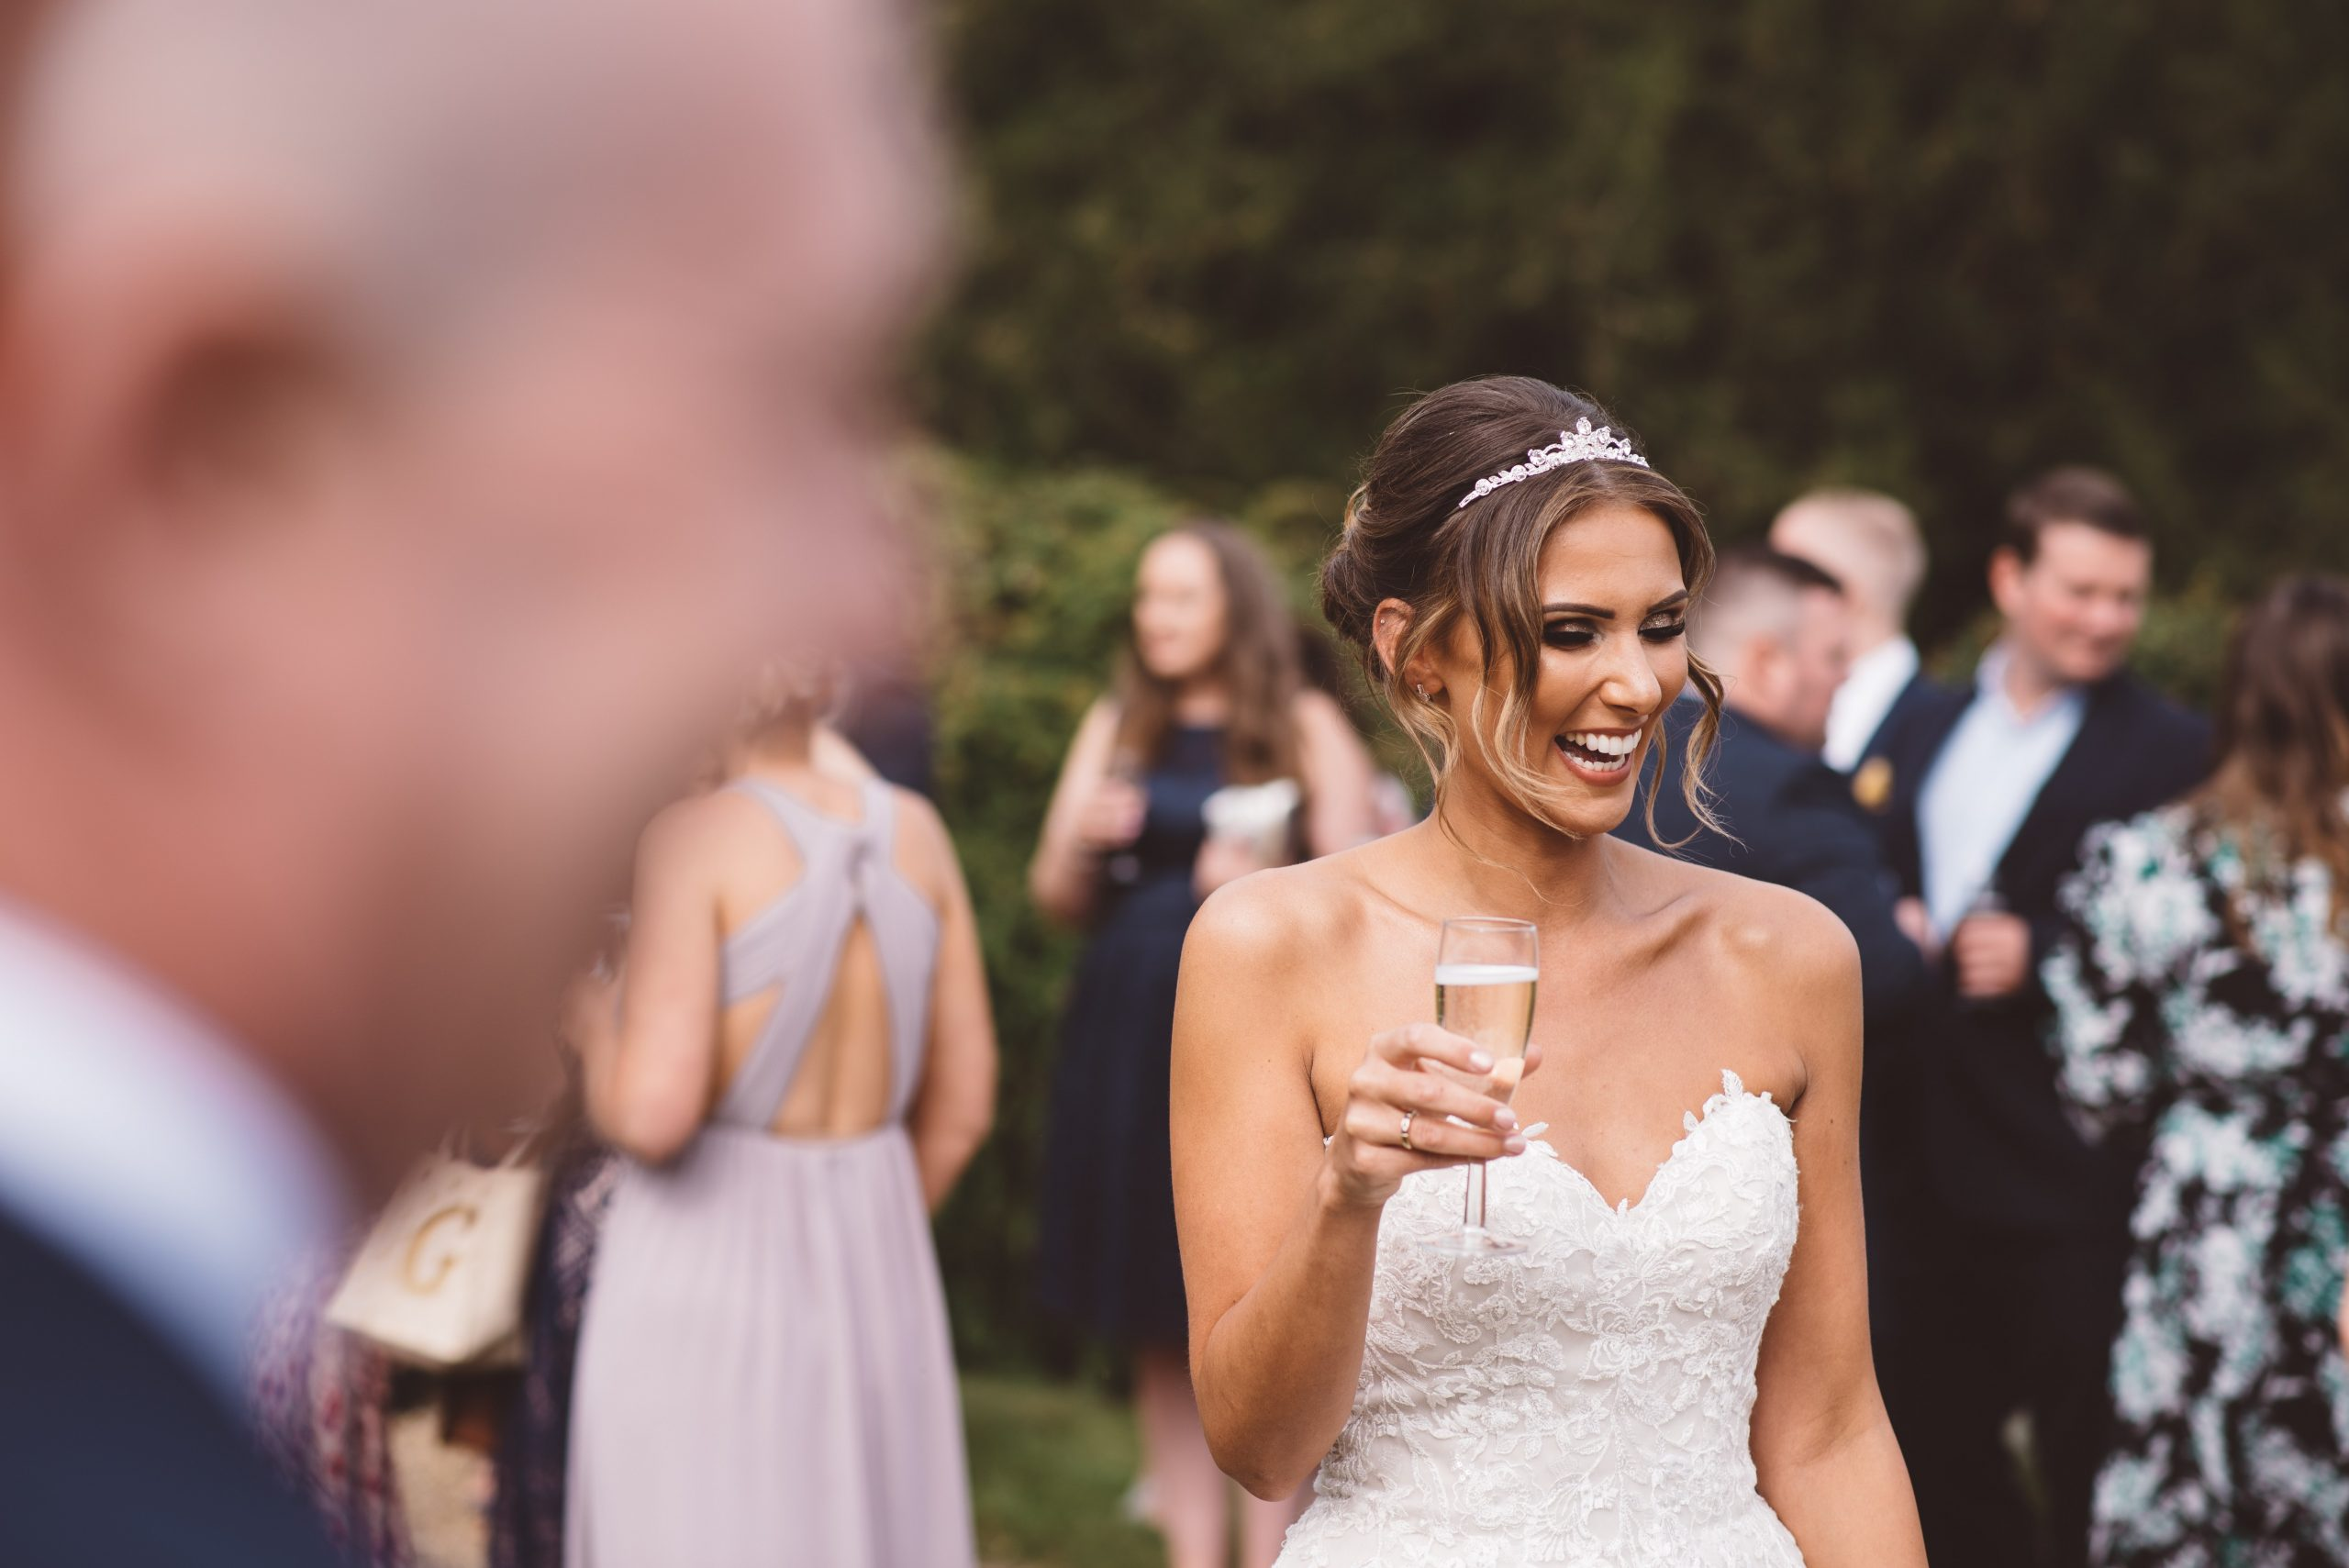 candid photo of bride at Keythorpe Manor